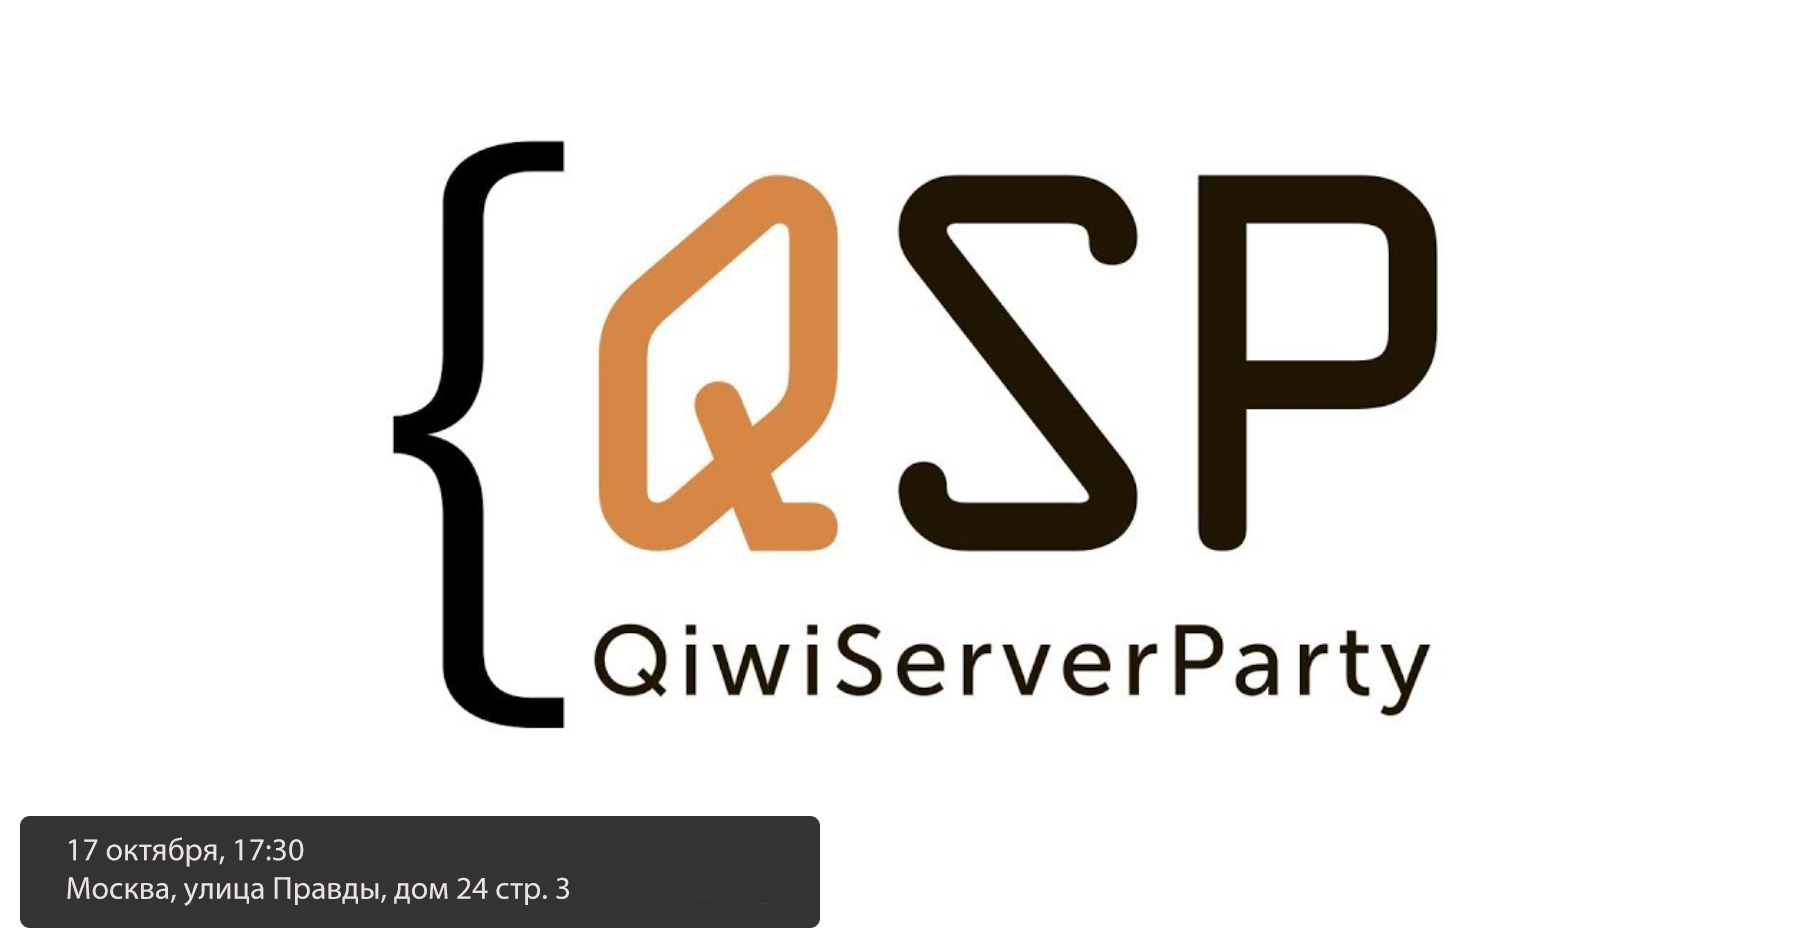 QIWI Server Party 5.0